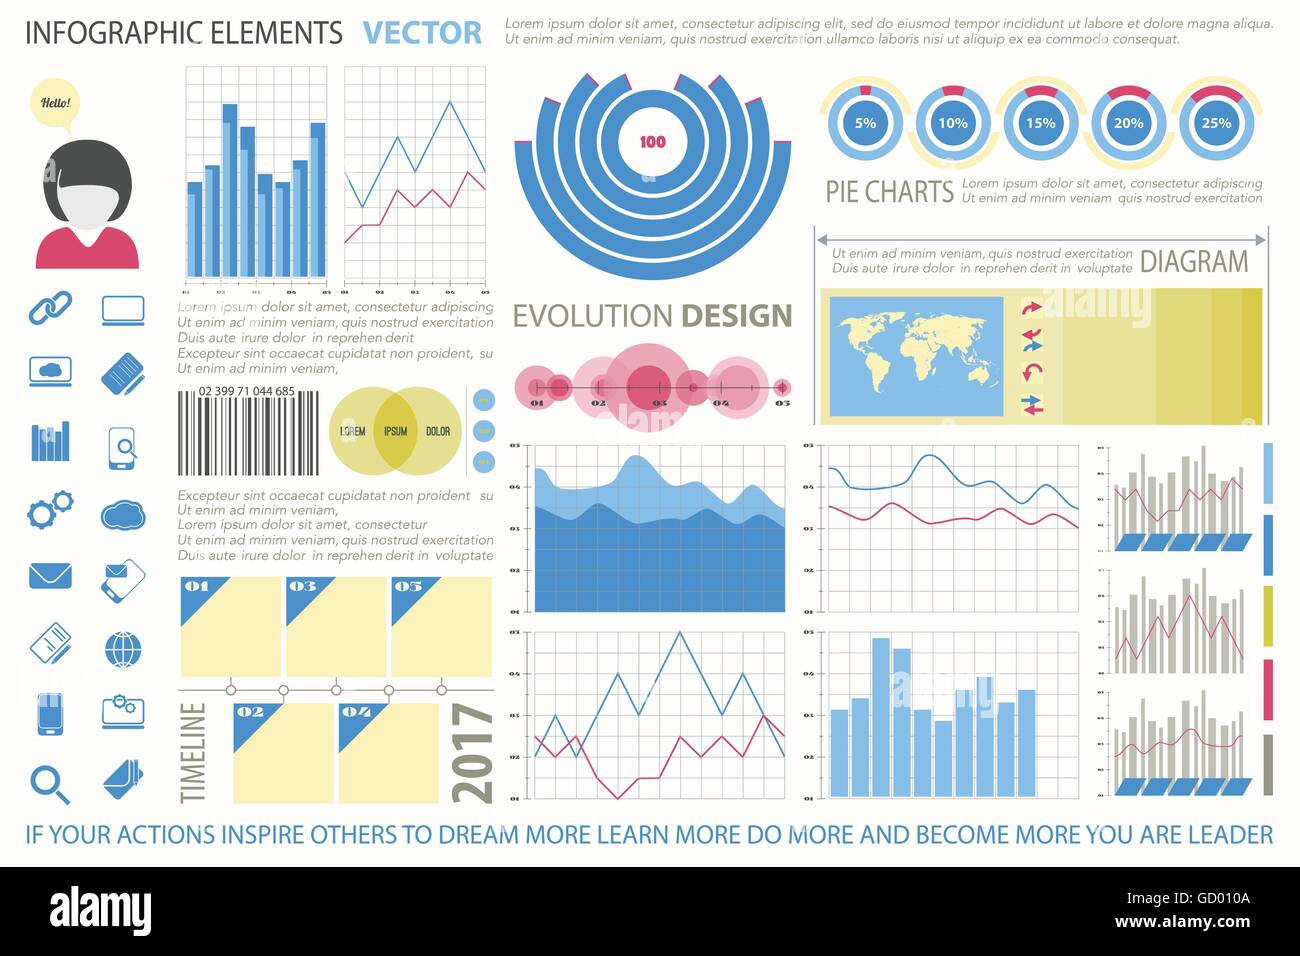 Info graphic elements web technology icons vector time line stock info graphic elements web technology icons vector time line diagram arrow symbol world map pie chart icon financial statis ccuart Image collections